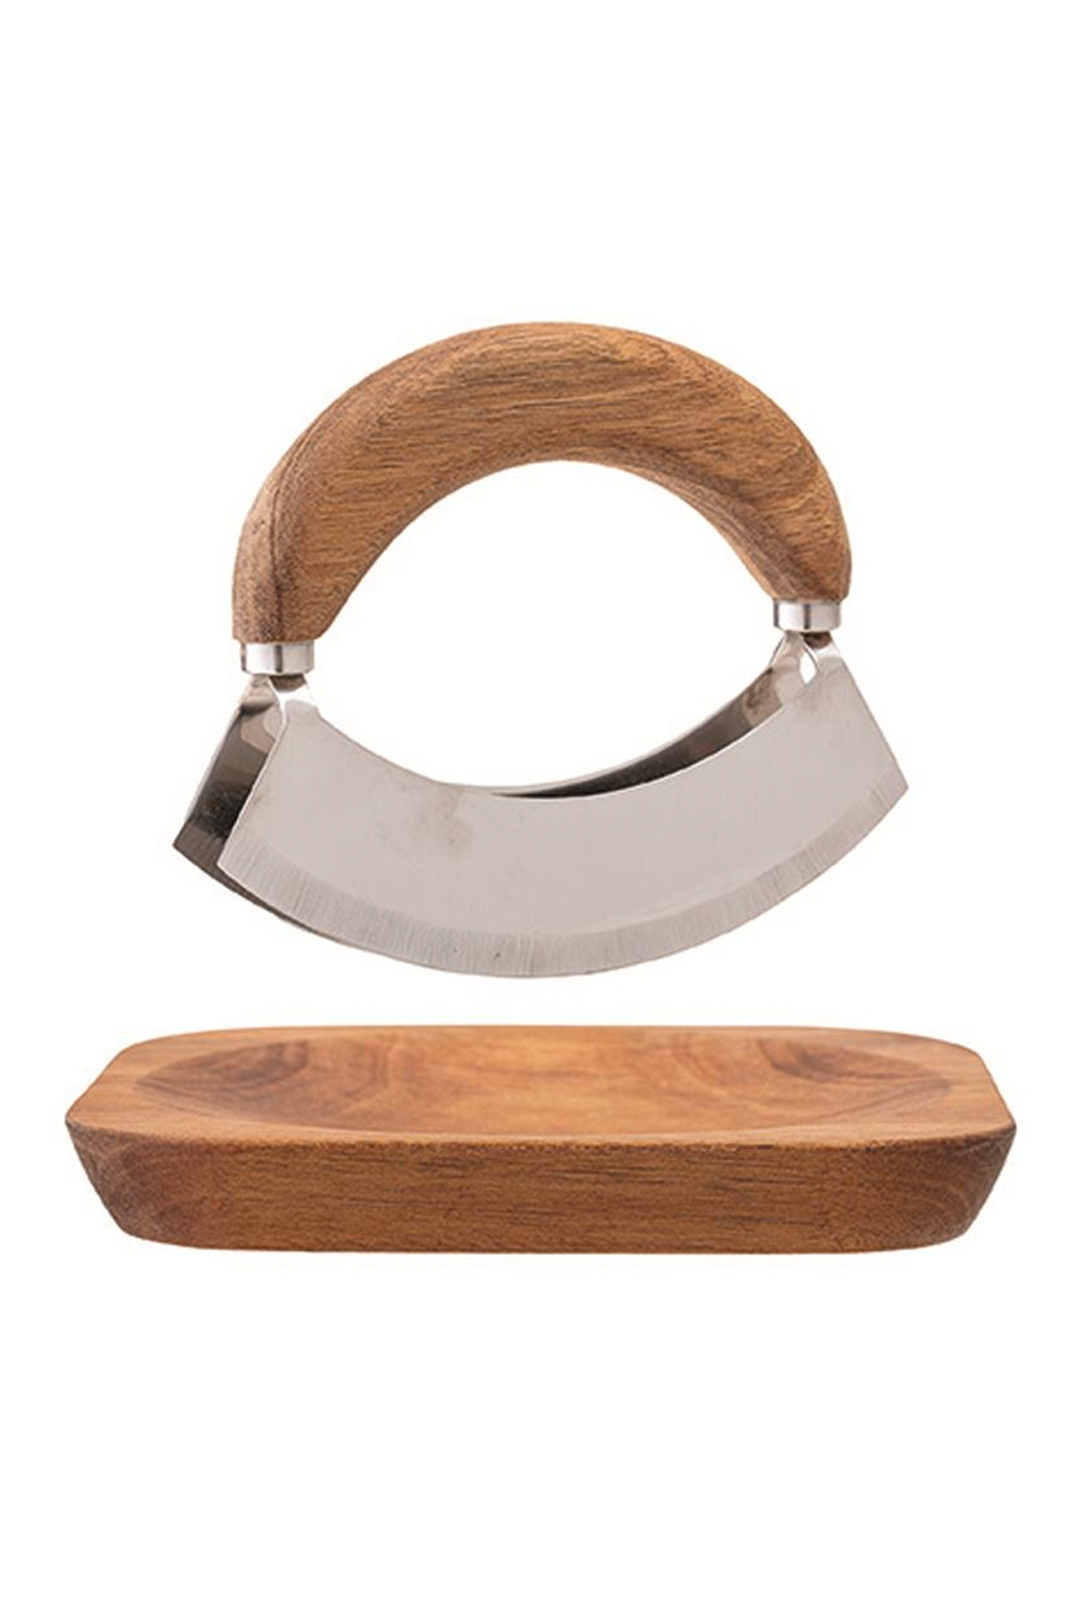 acacia wood + stainless steel mezzaluna w/ square cutting board